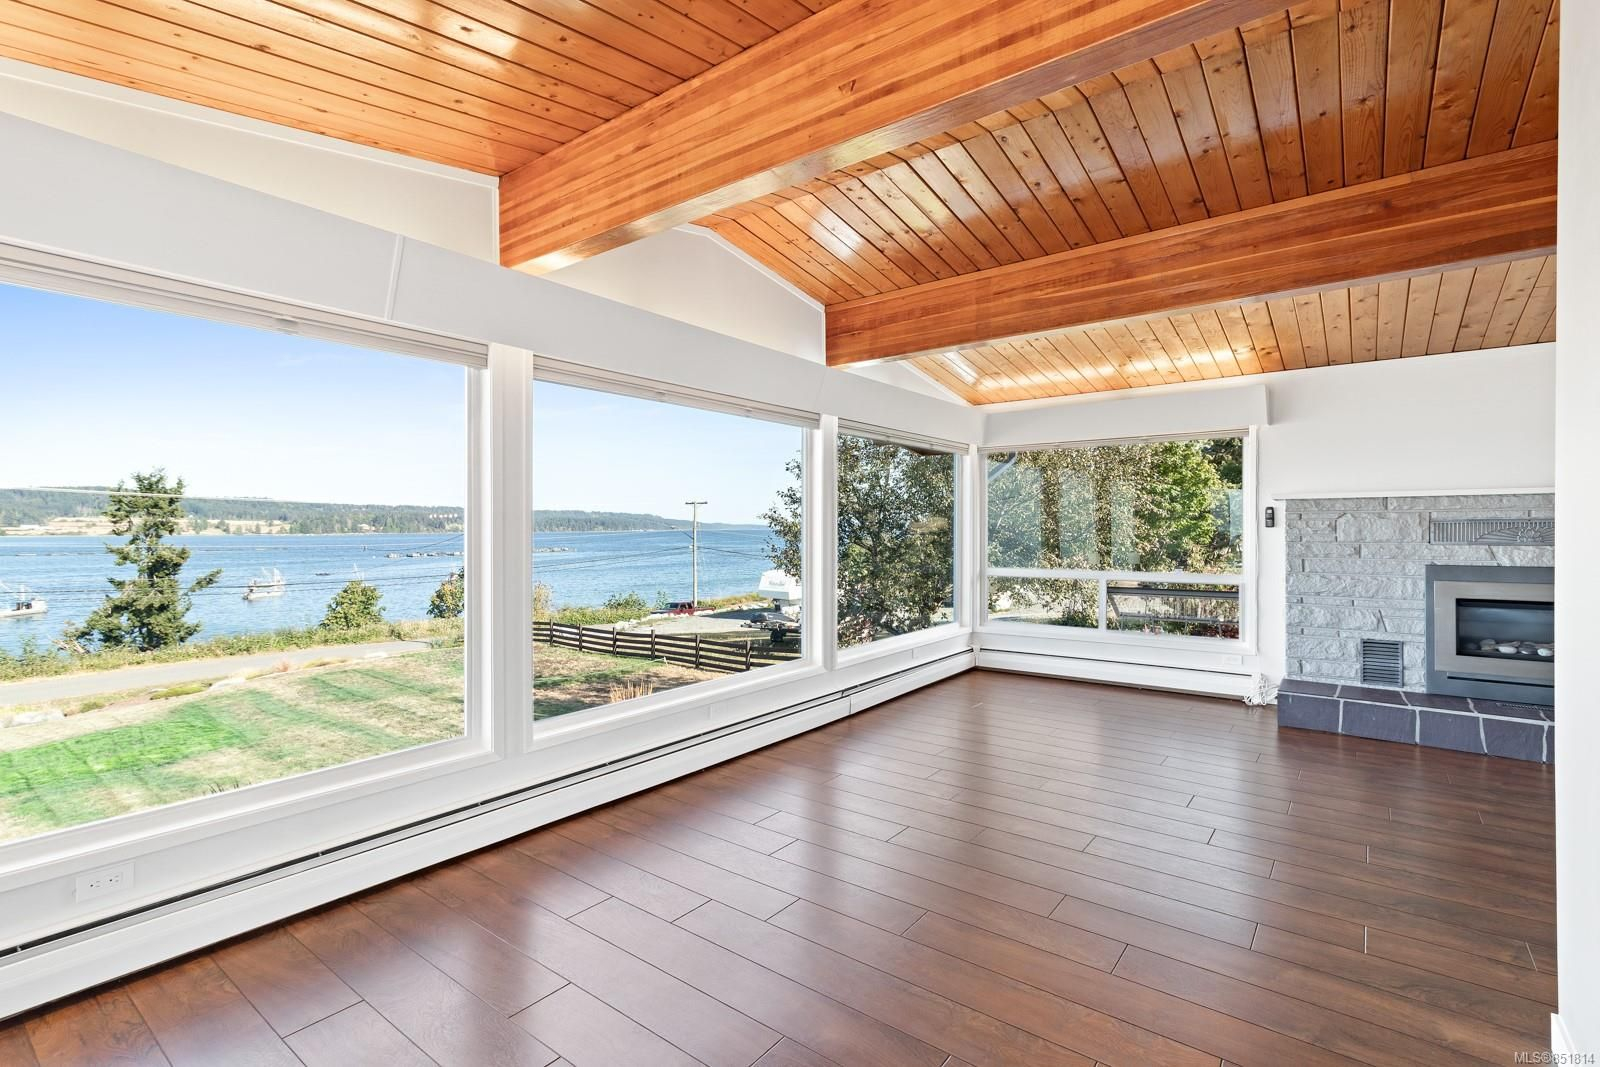 Photo 8: Photos: 191 Muschamp Rd in : CV Union Bay/Fanny Bay House for sale (Comox Valley)  : MLS®# 851814